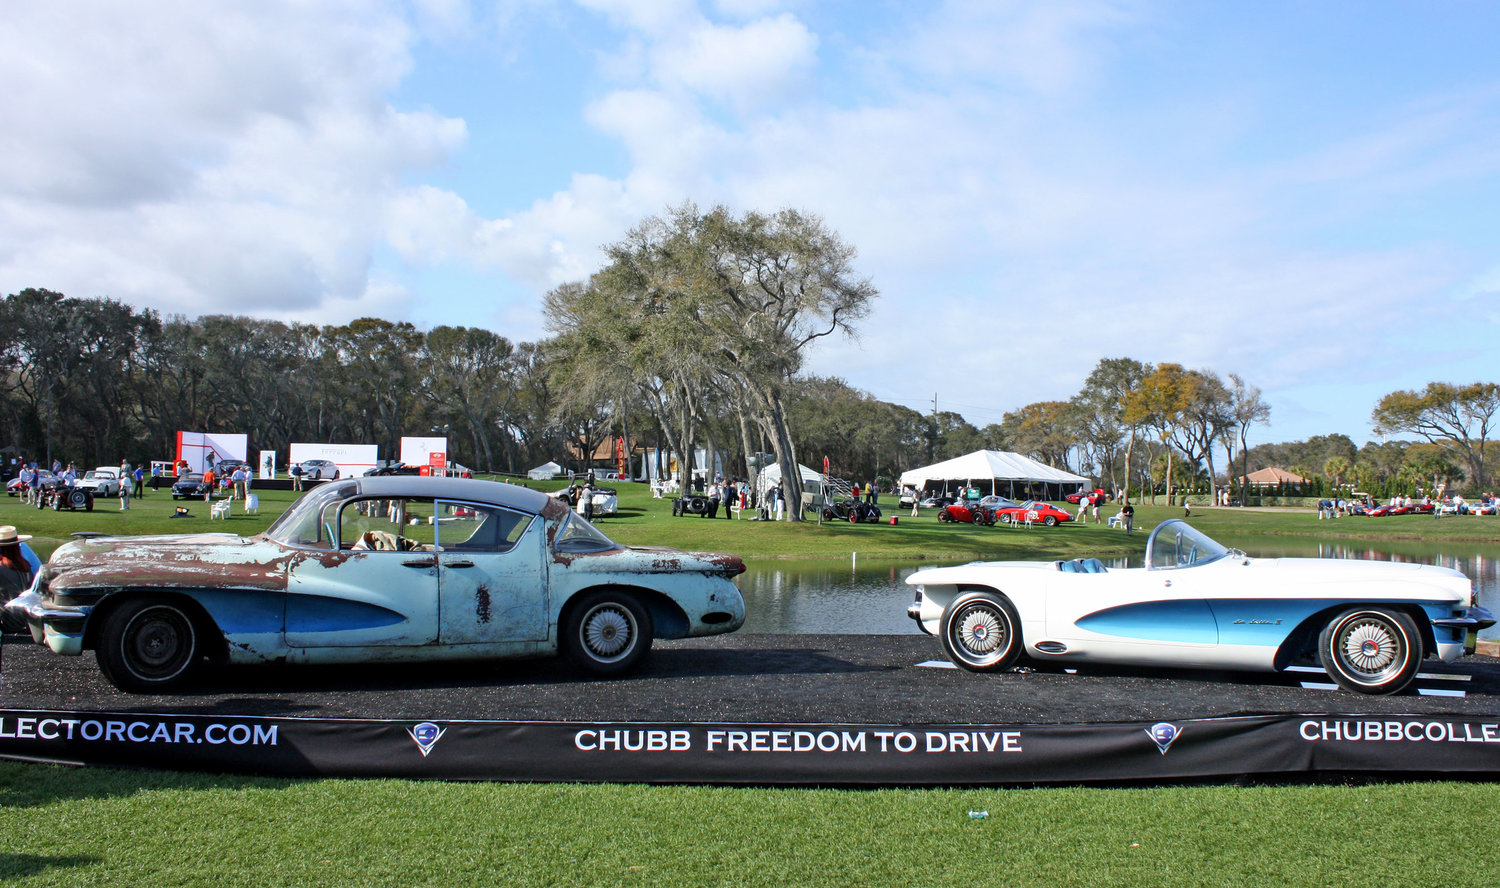 The unrestored 1955 LaSalle sedan, left, and the restored 1955 lasalle roadster, right, at the Amelia Island Concours.